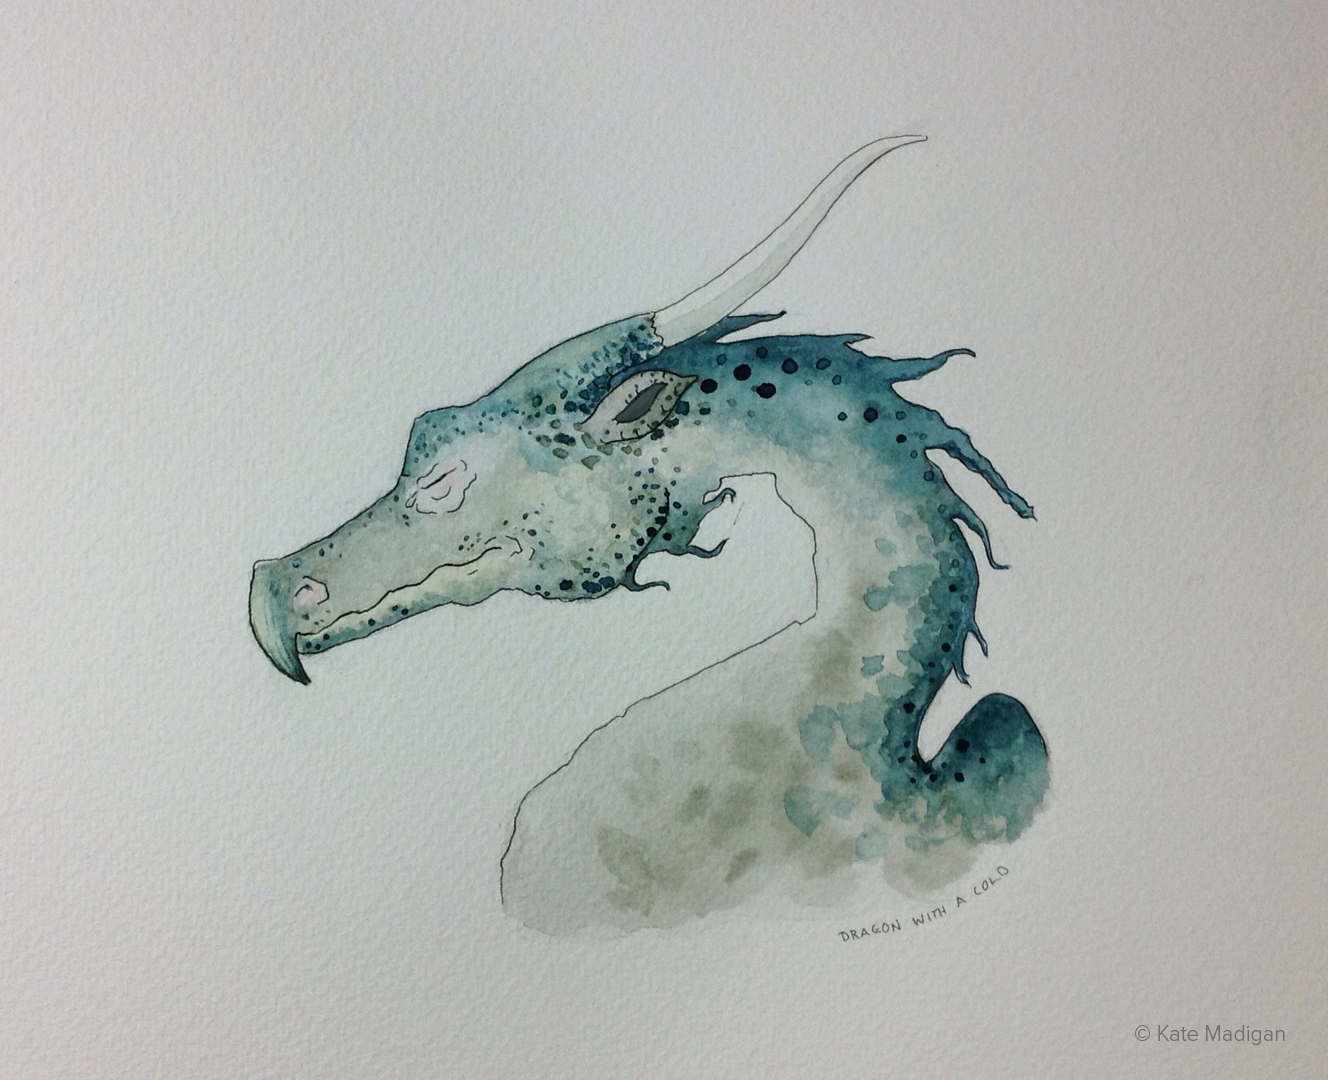 Dragon with a cold. Ink and watercolour. Copyright Kate Madigan.